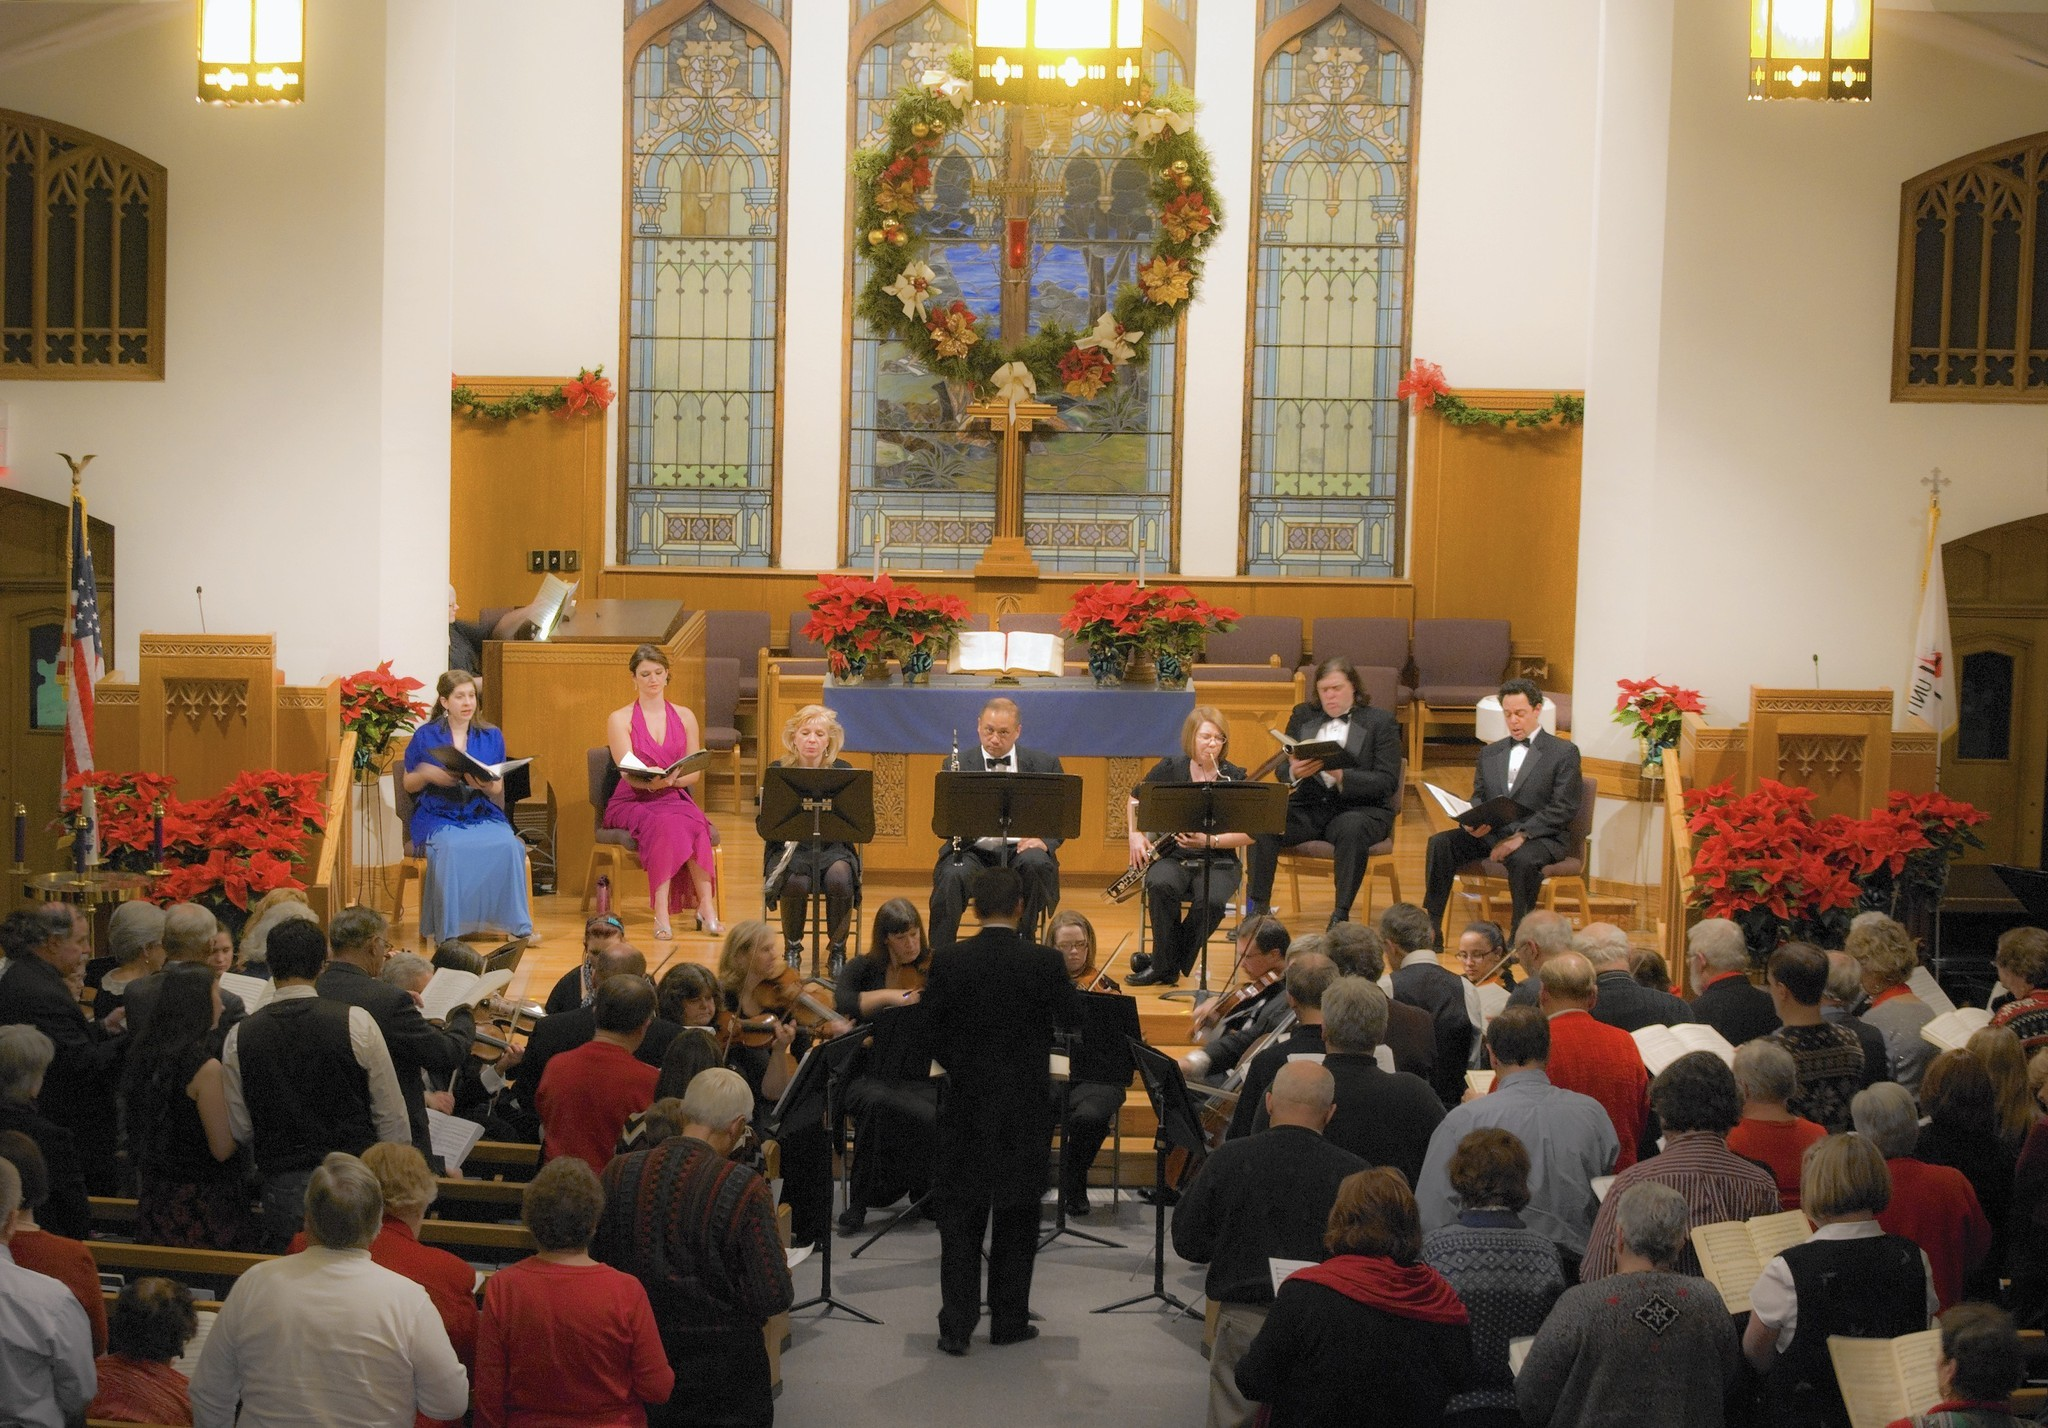 Public invited to sing messiah along with chorus orchestra lake public invited to sing messiah along with chorus orchestra lake county news sun solutioingenieria Gallery